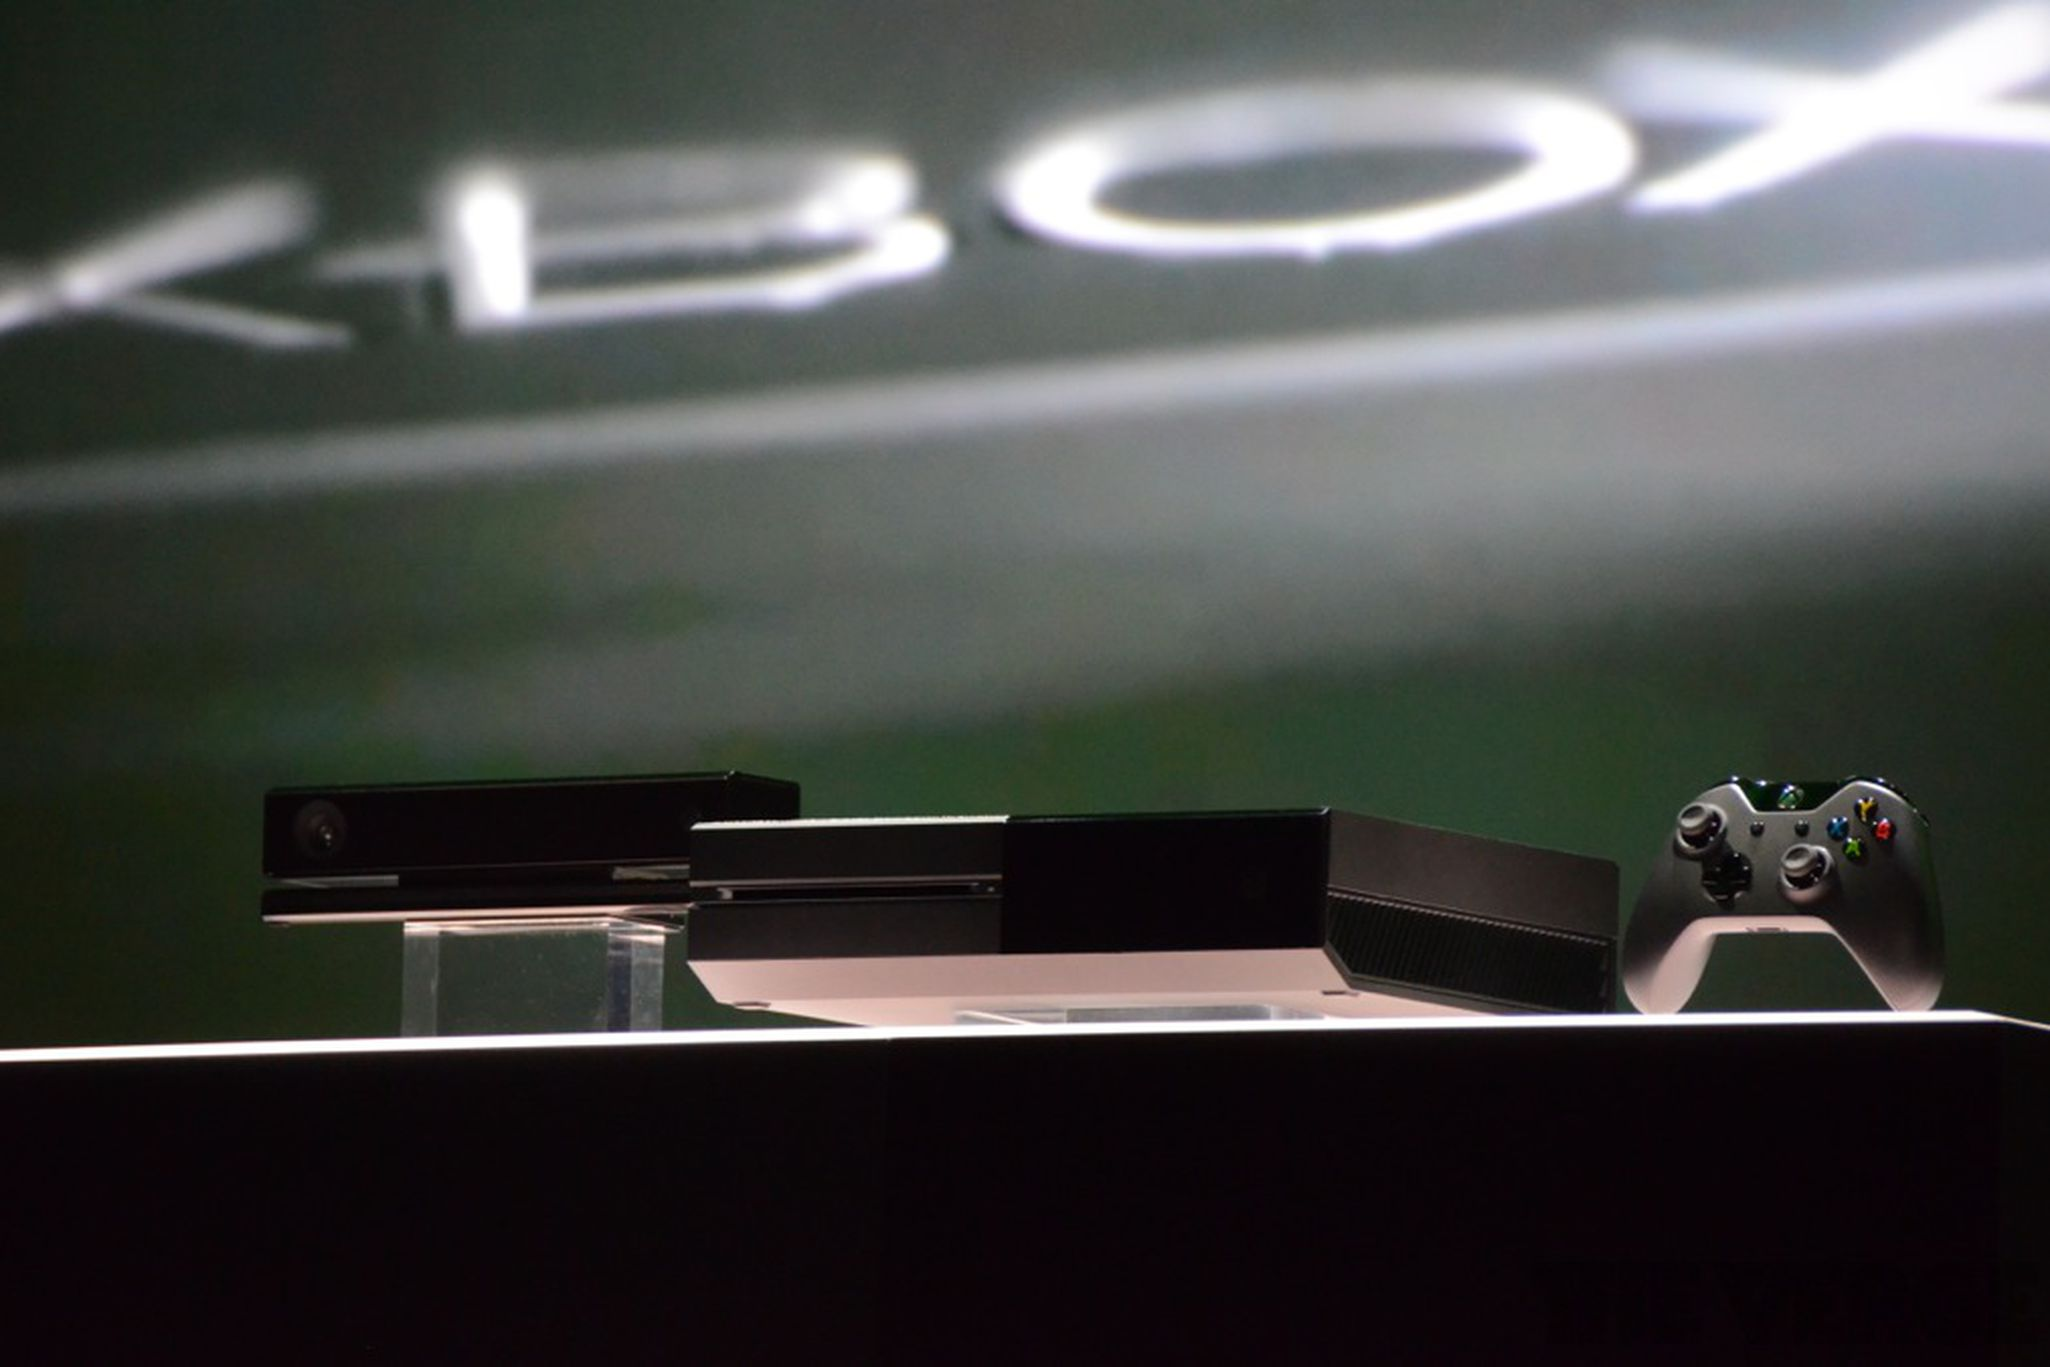 Microsoft Xbox One: everything you need to know | The Verge